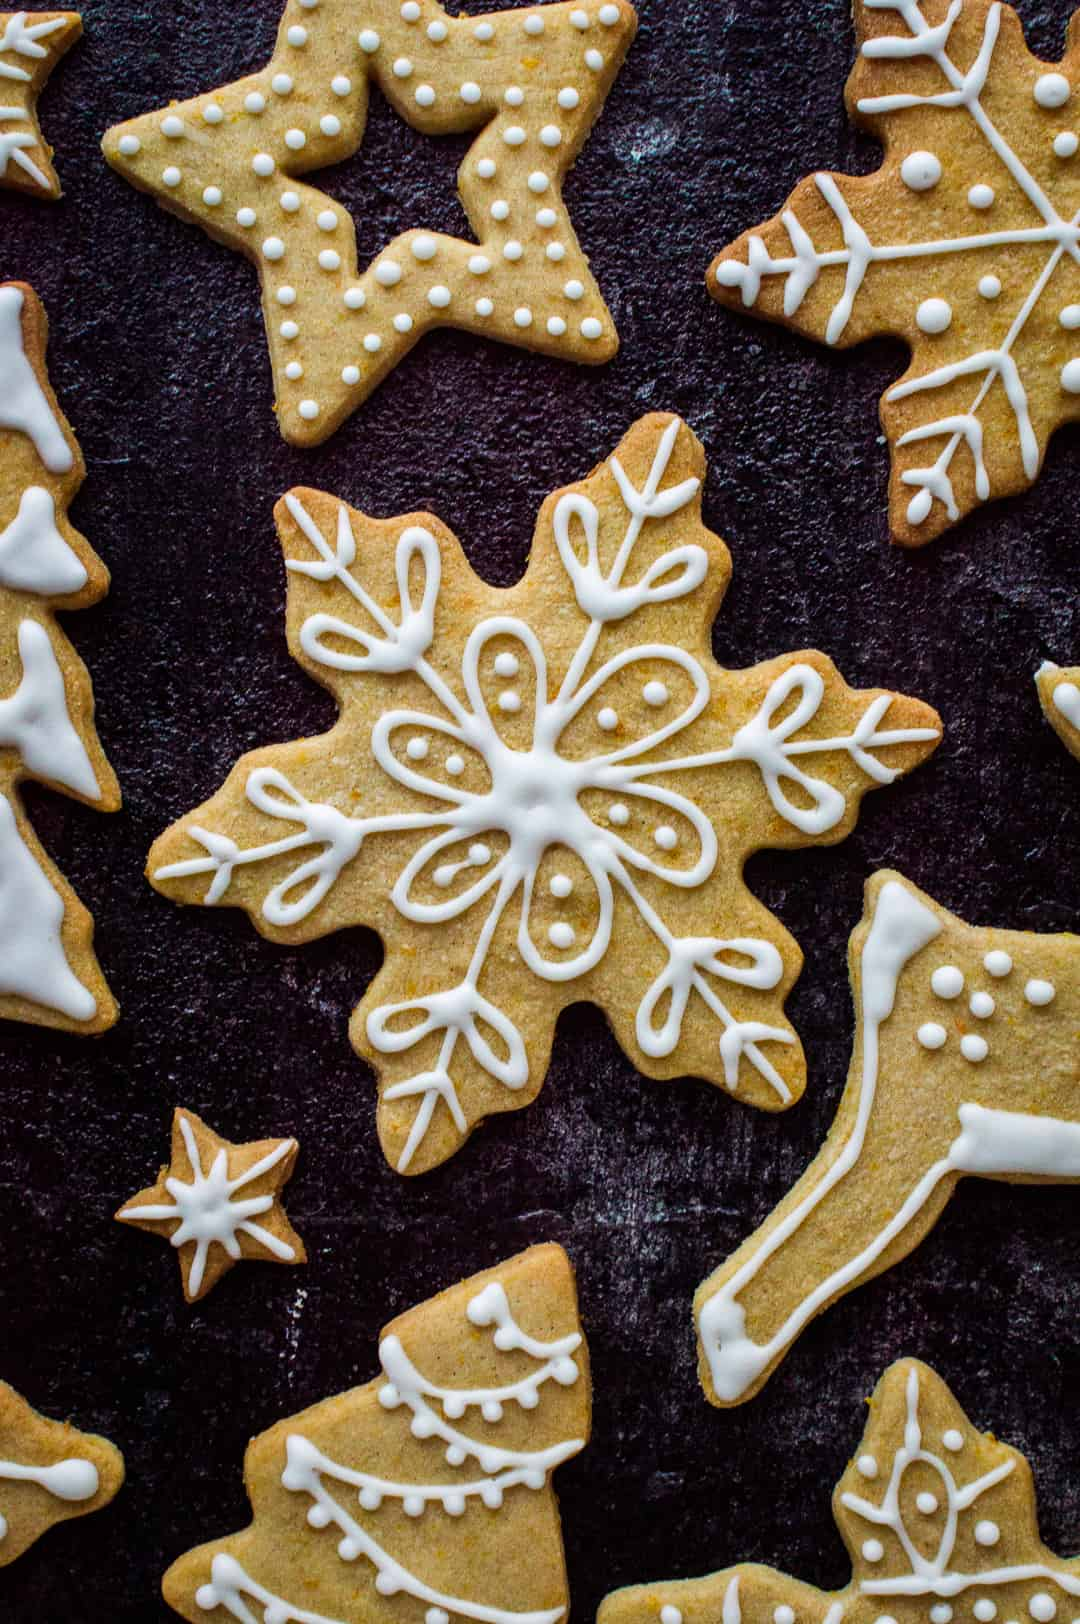 Orange cinnamon butter biscuit snowflake cookie with royal icing design